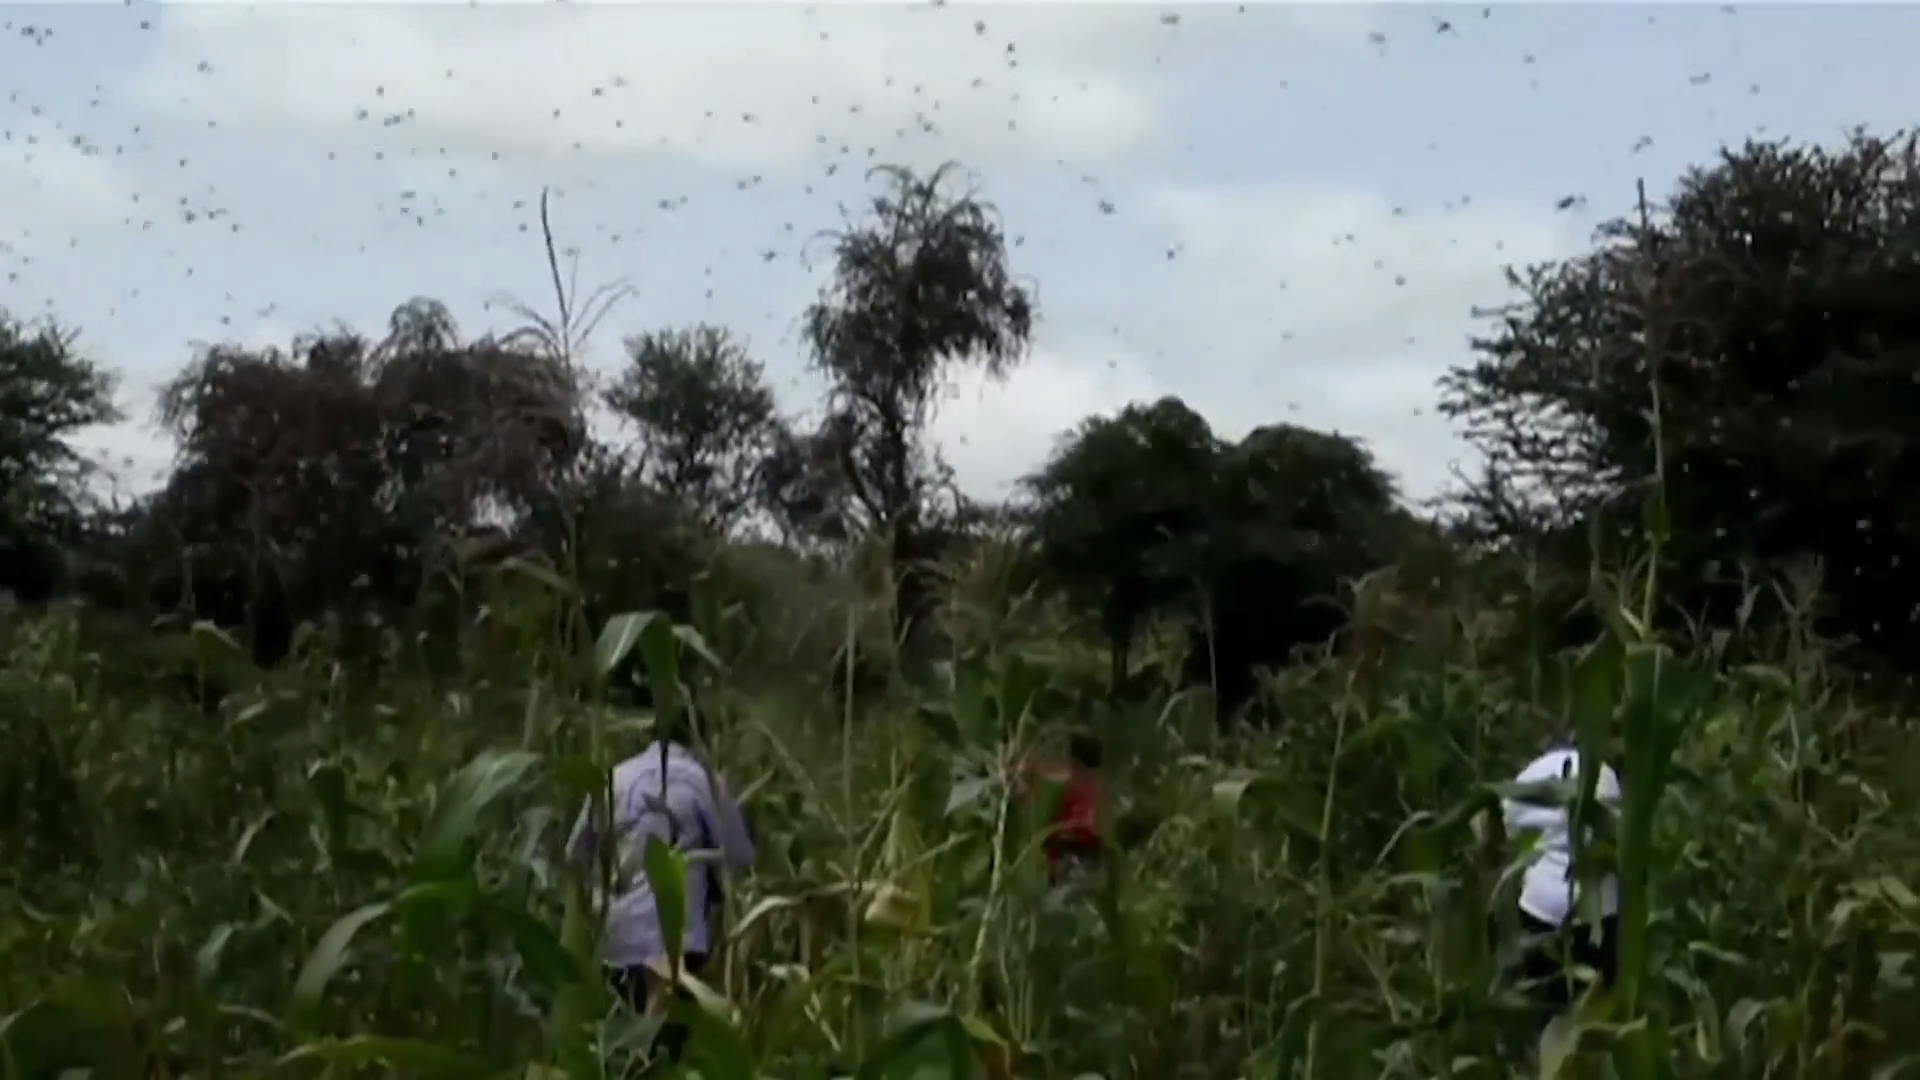 UN seeks help to thwart locust swarms in east Africa - channel 4